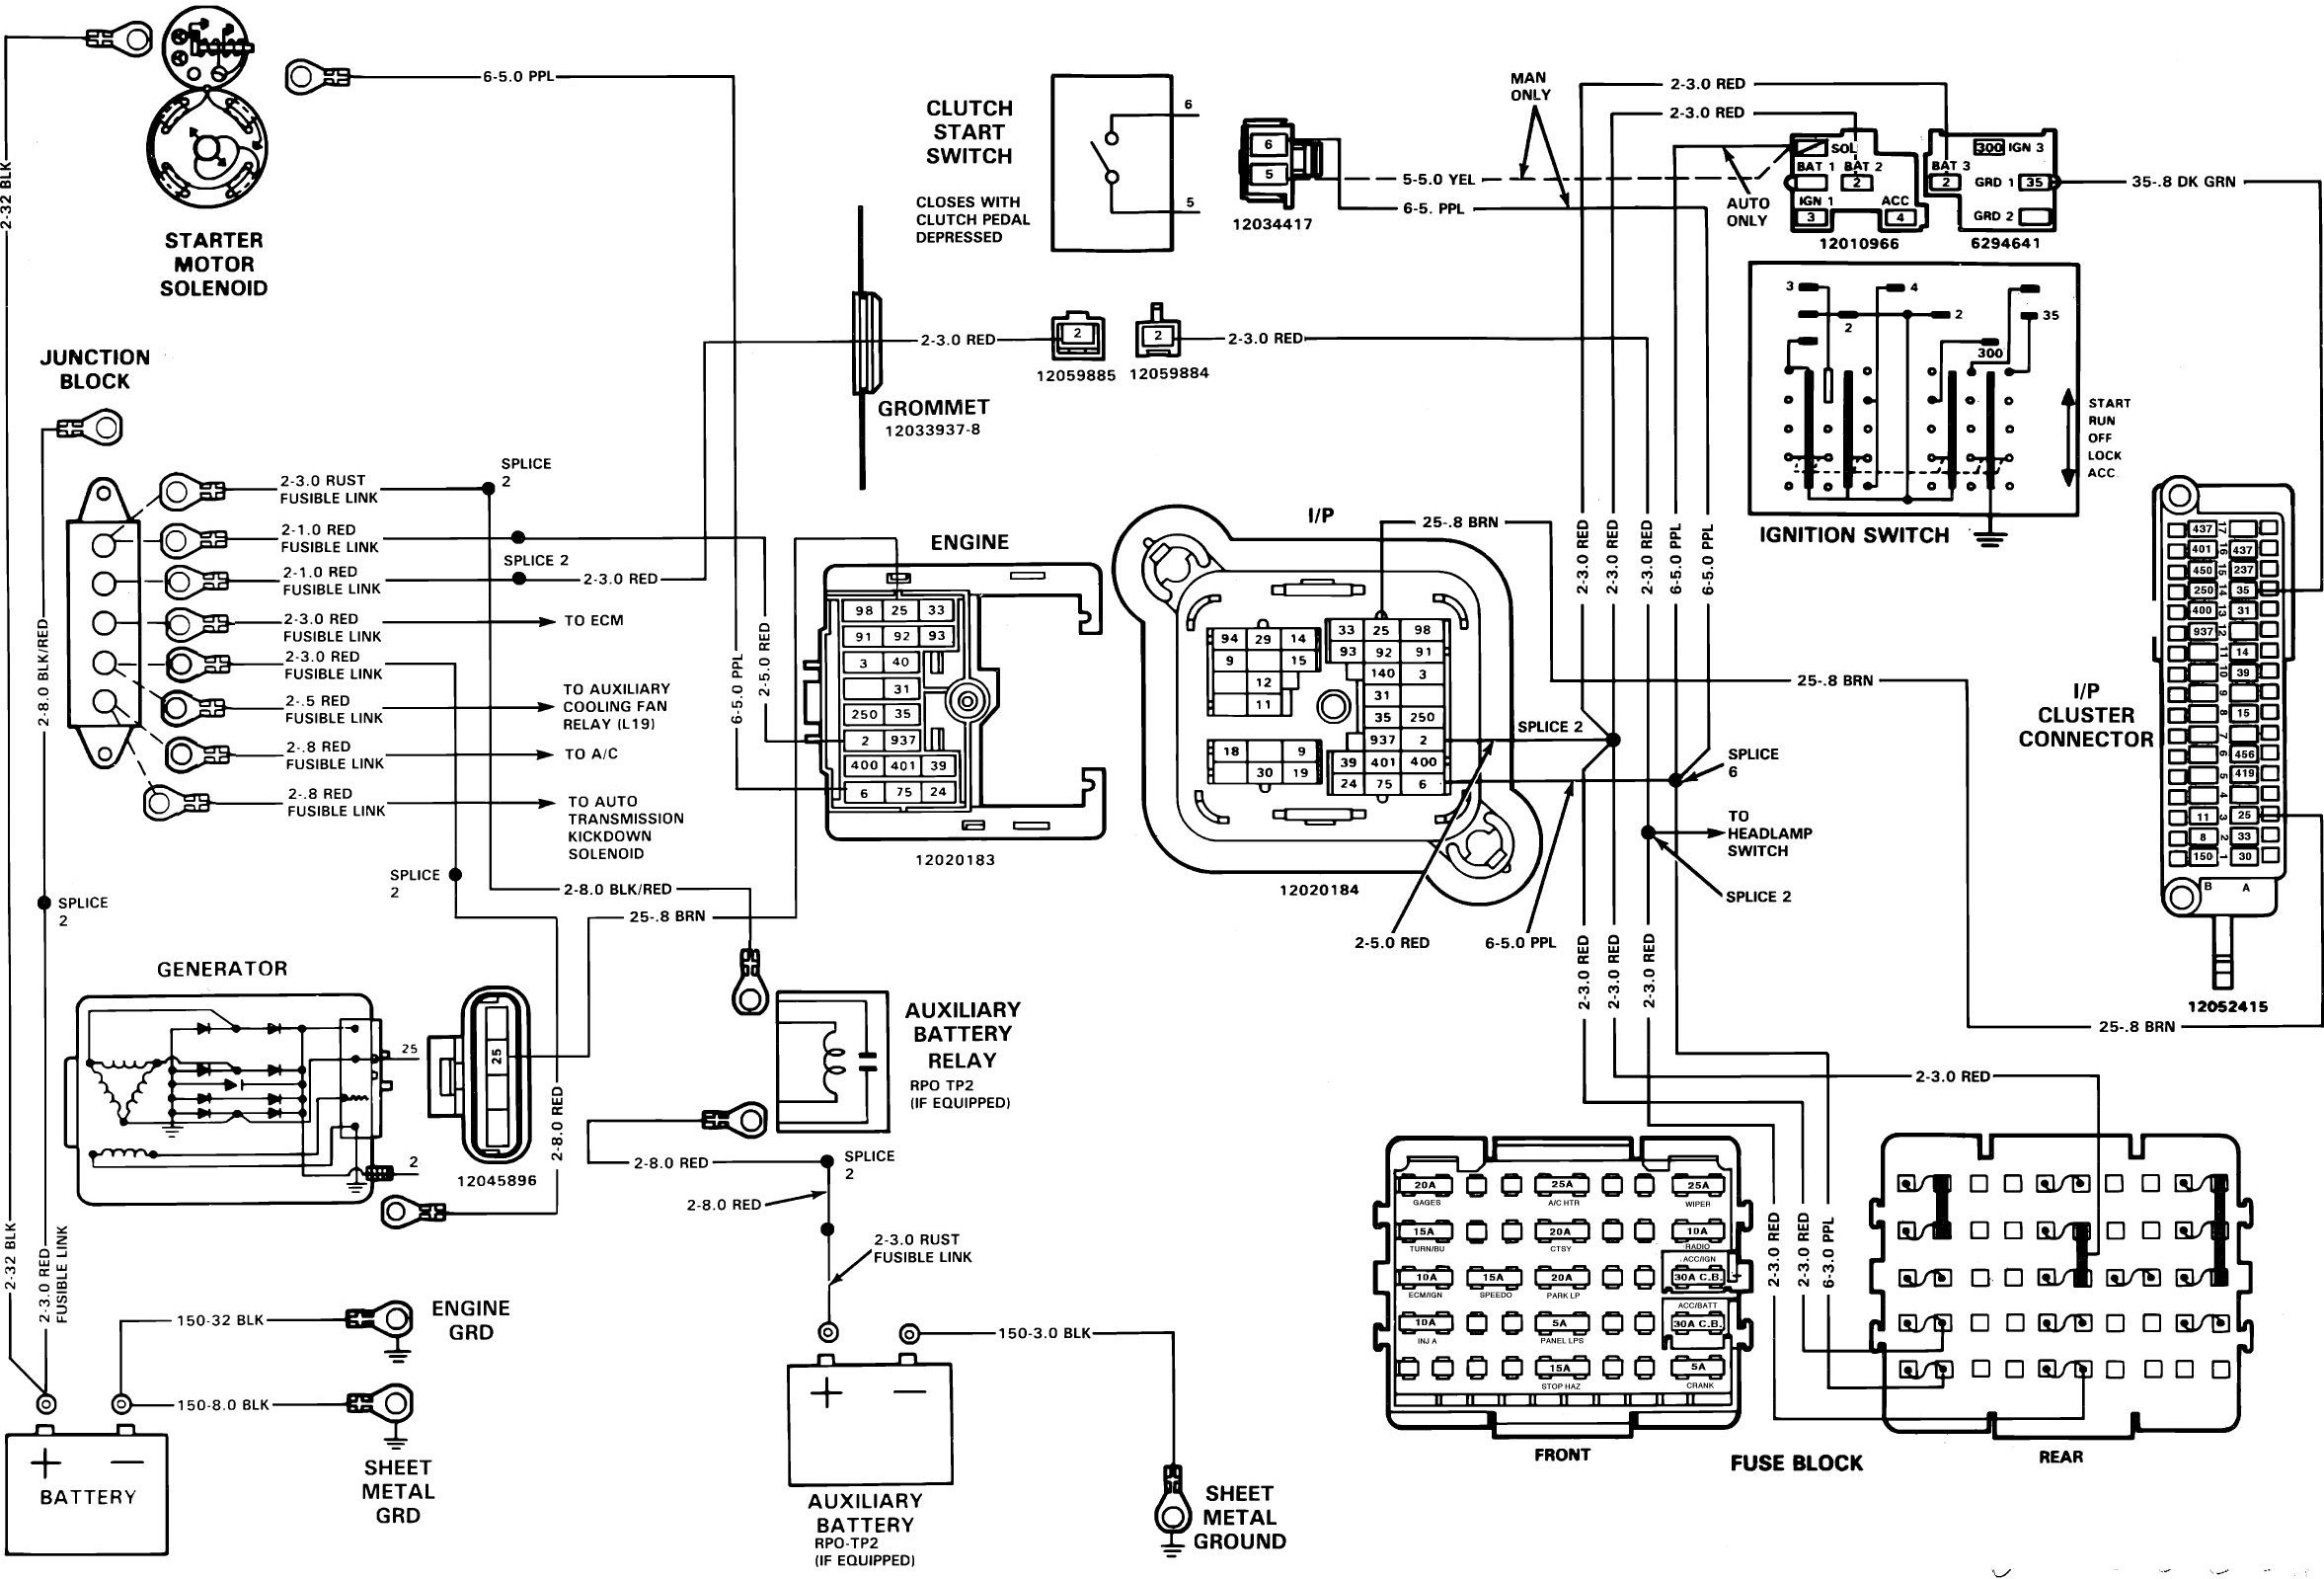 Tbi Wiring Diagram For 1990 Gmc Suburban Will Be A Topkick Chevy 1500 Engine U2022 Free Sierra